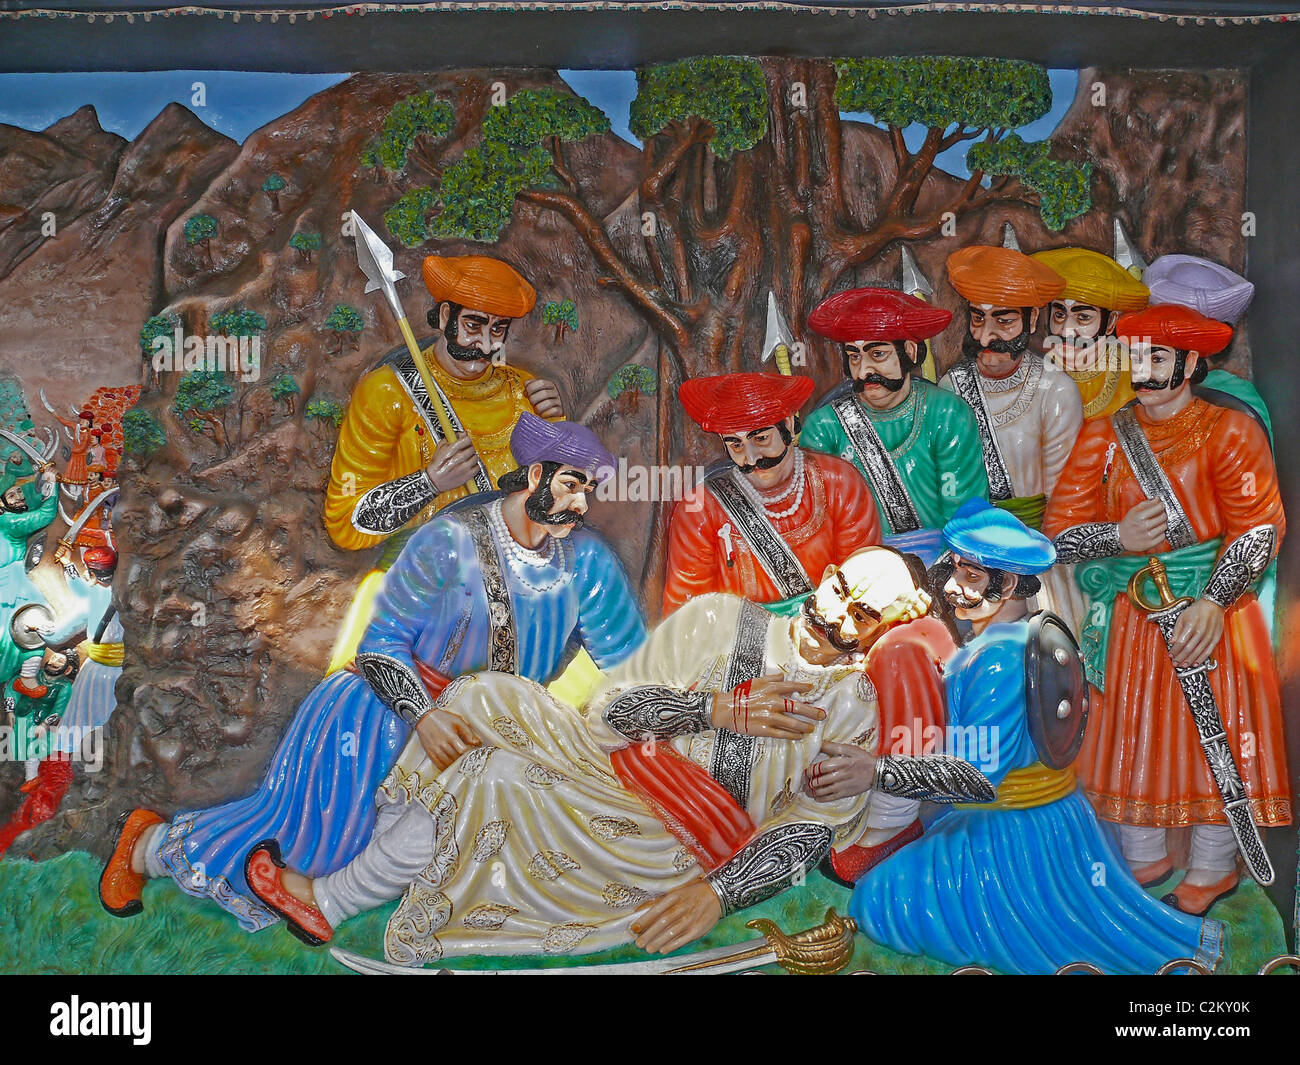 Chhatrapati Shivaji Maharaj's Empire at Dervan in the form of  the 3 dimentional paintings and sculptures constructed, - Stock Image